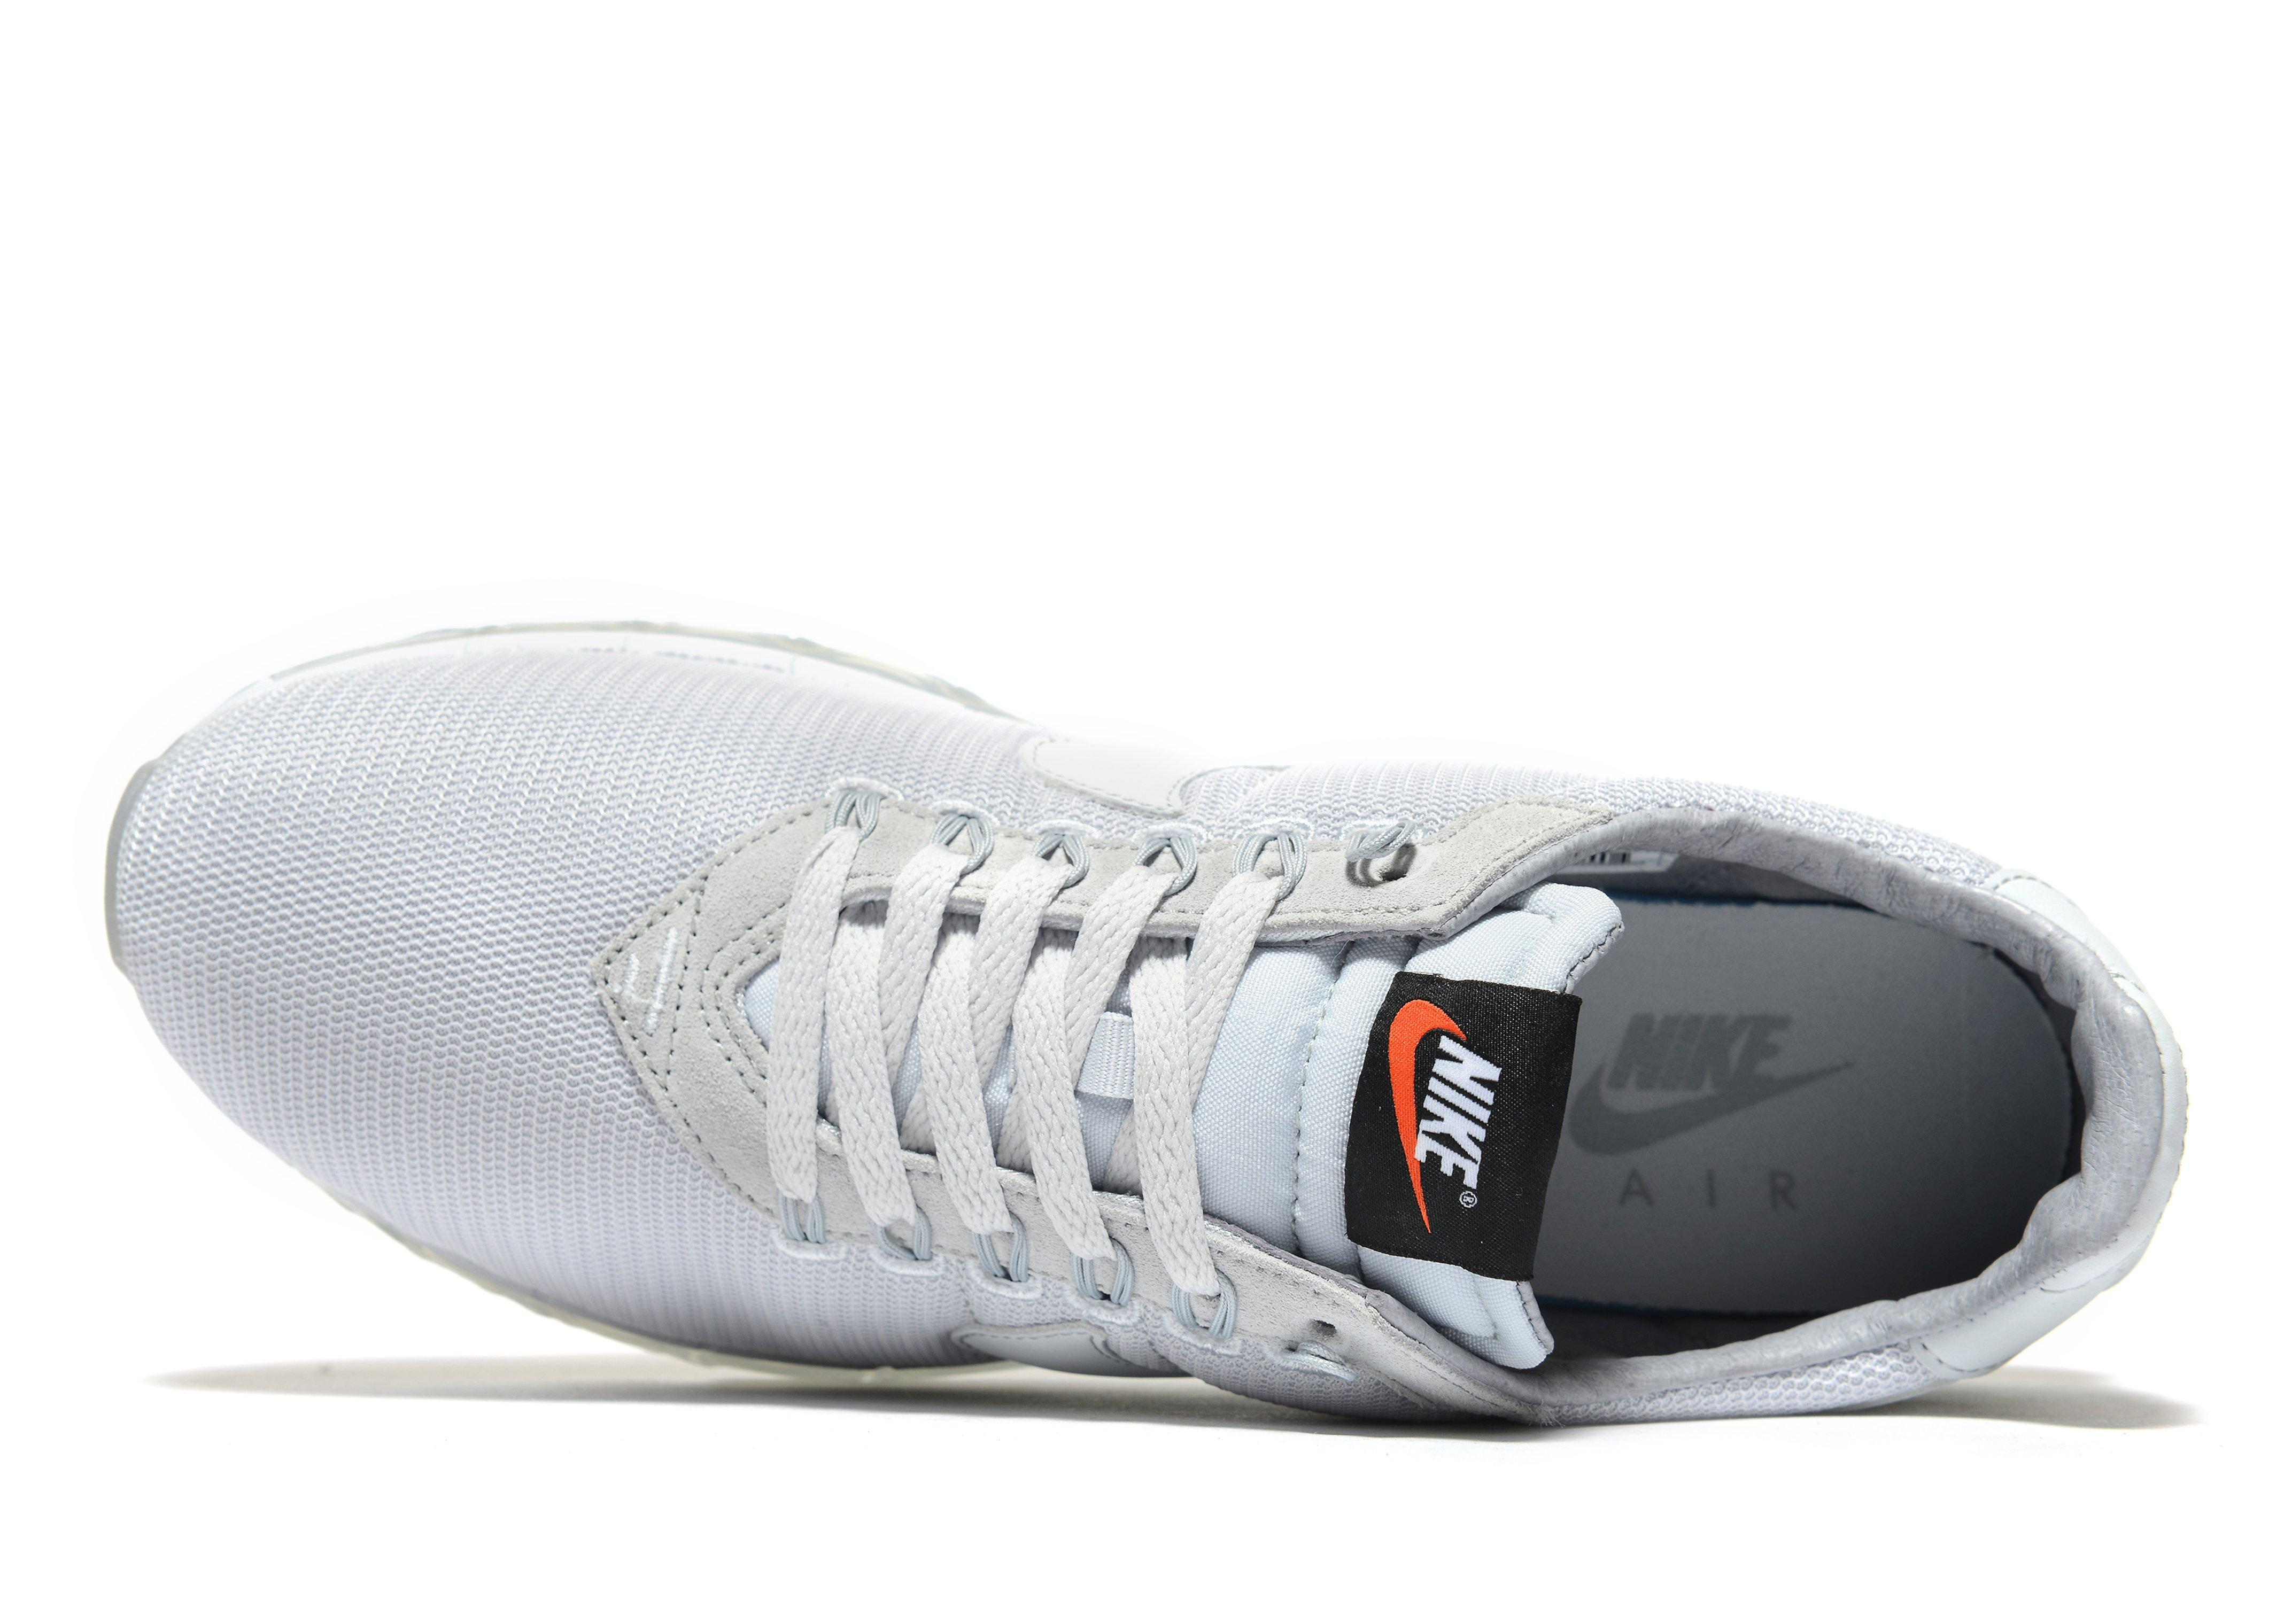 64475a00fa6d ... wholesale gallery. previously sold at jd sports womens nike air max  5d038 905ab